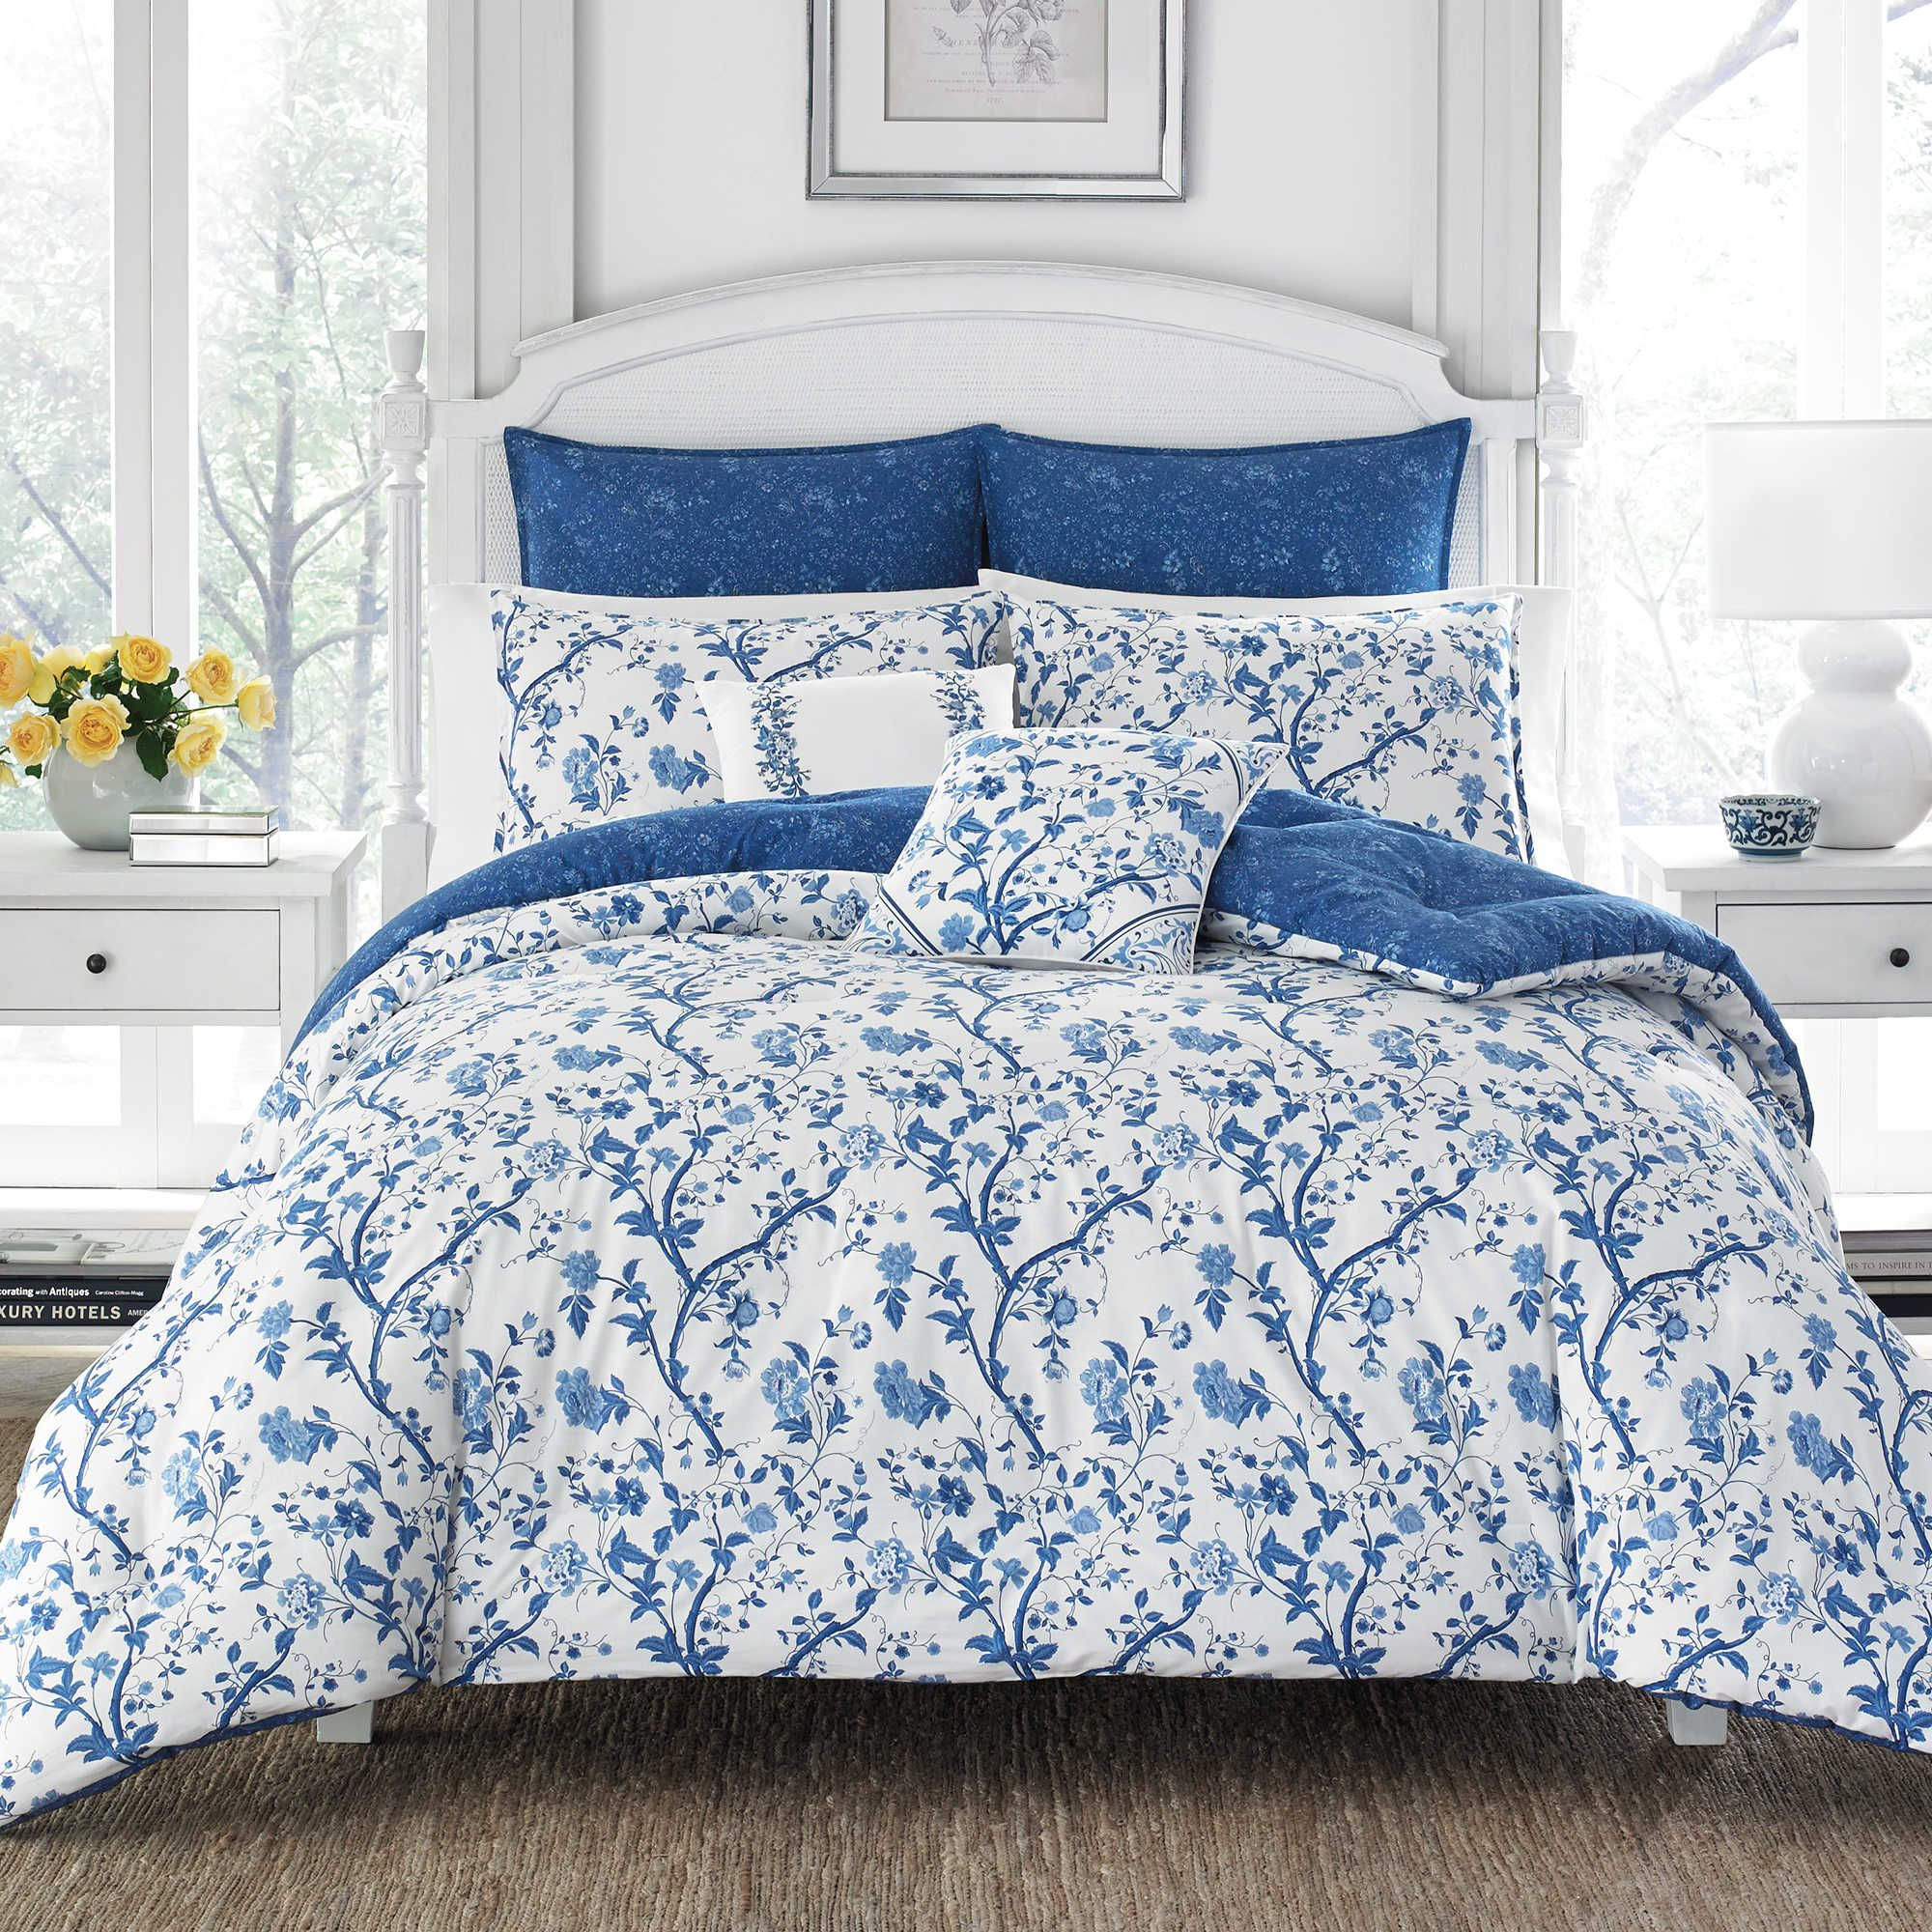 Laura Ashley Elise Comforter Set in 2020 Blau weiß